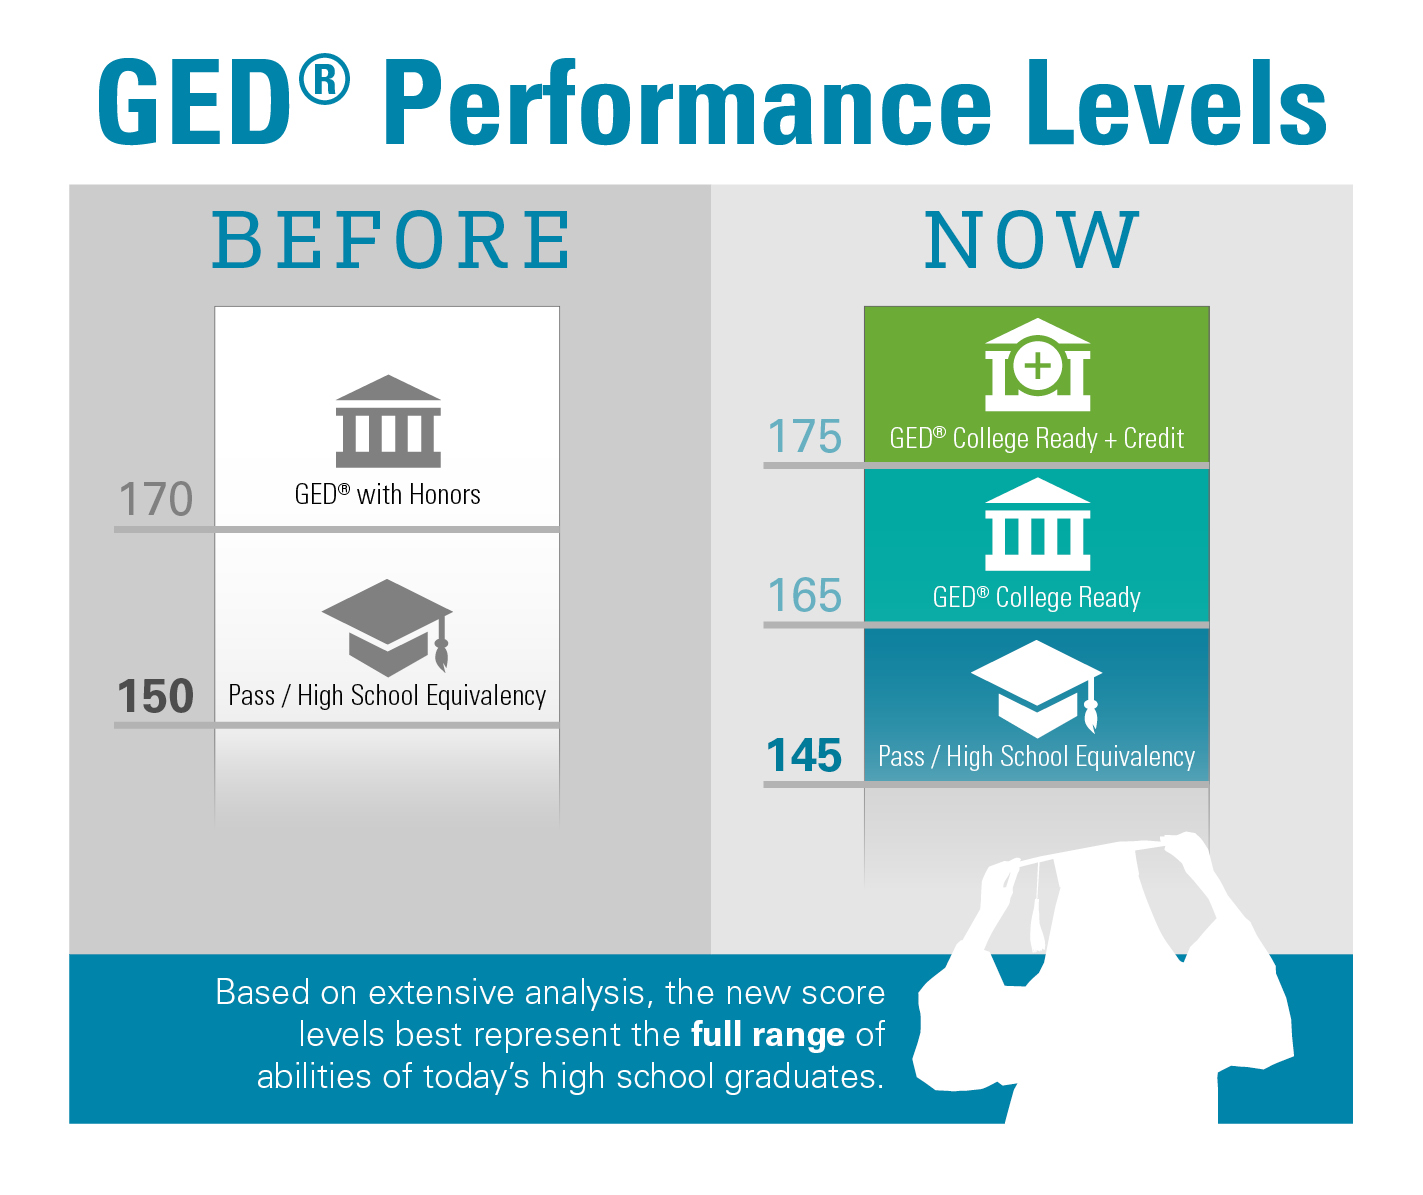 Ged Test Score Performance Level Enhancements